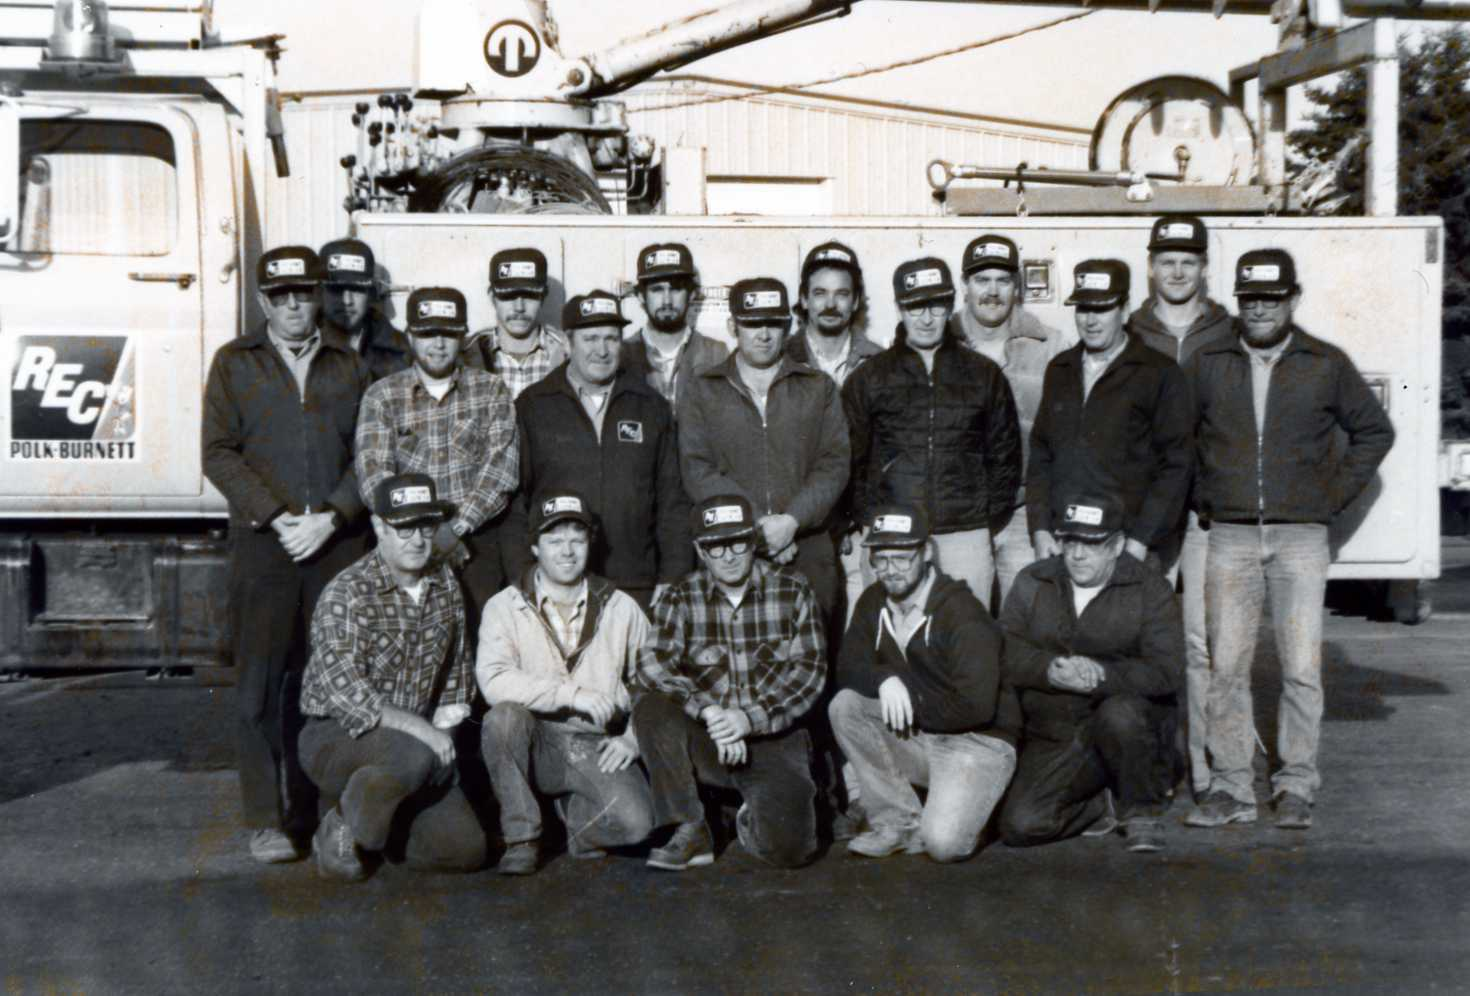 https://www.polkburnett.com/sites/pbec/files/revslider/image/Group_Photo_Linemen_by_Truck_Mid_80s.jpg